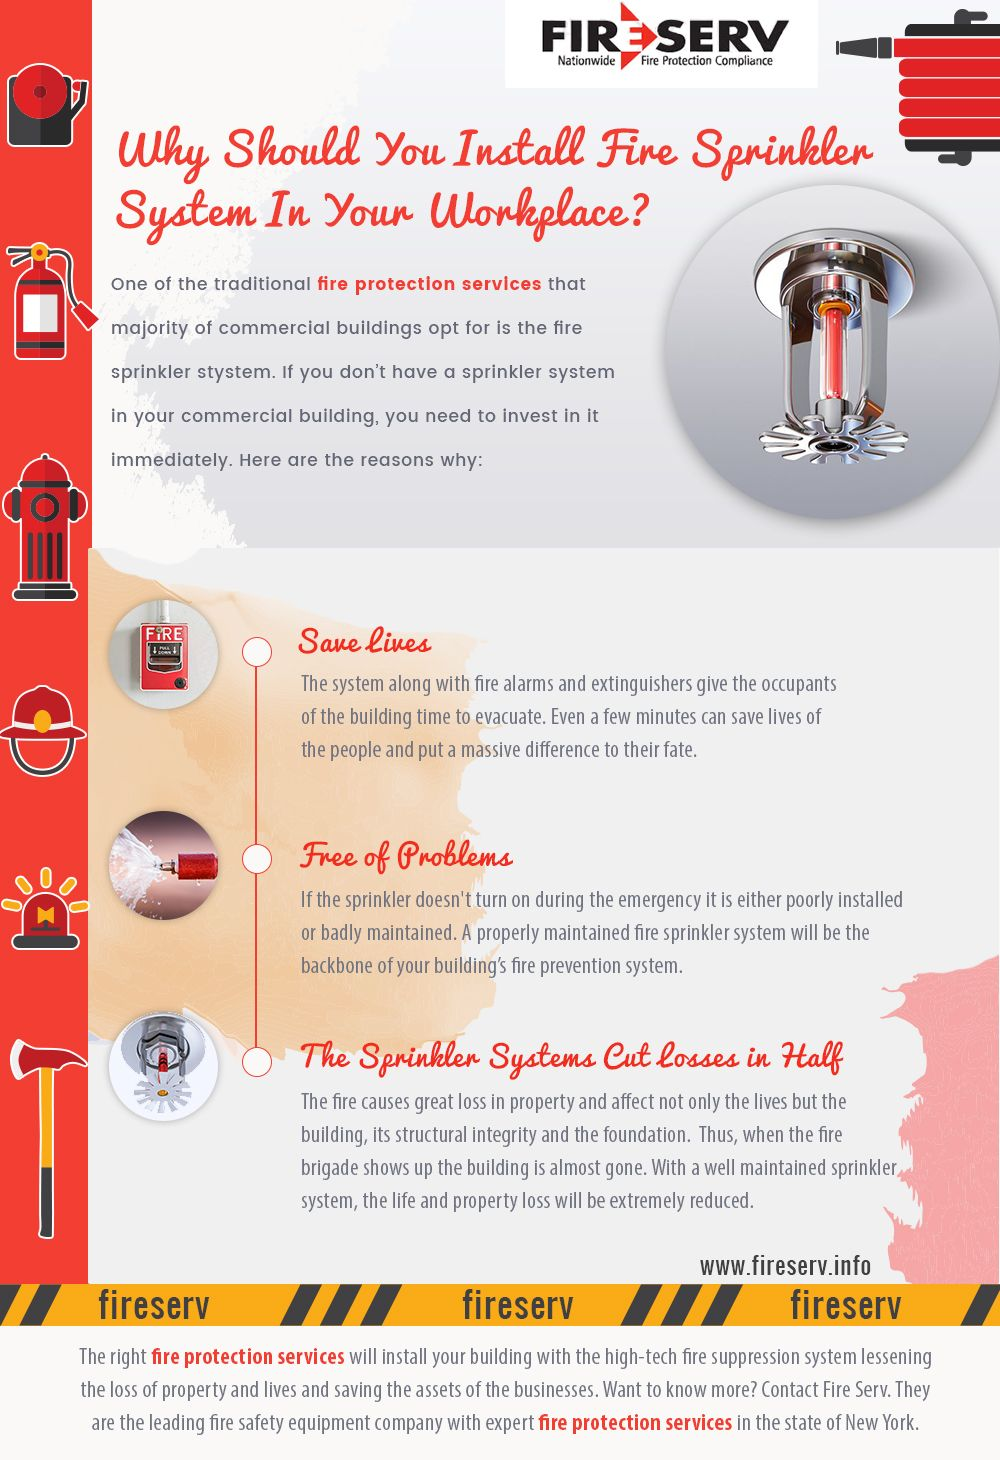 Fireserv the leading fire safety equipment company with